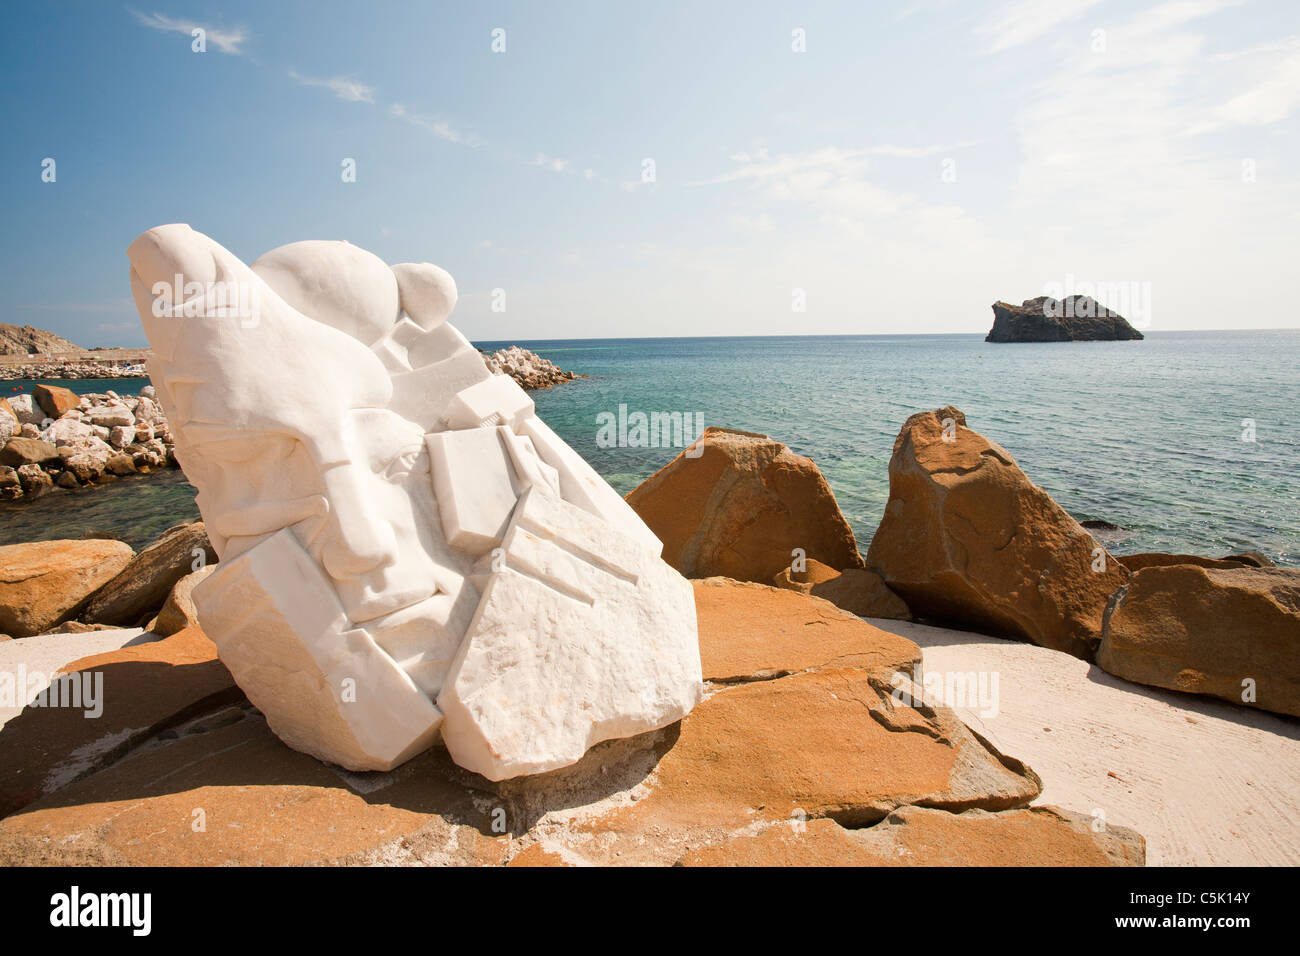 A sculpture of Sapho, on the sea front at Skala Eresou on Lesbos, Greece. - Stock Image